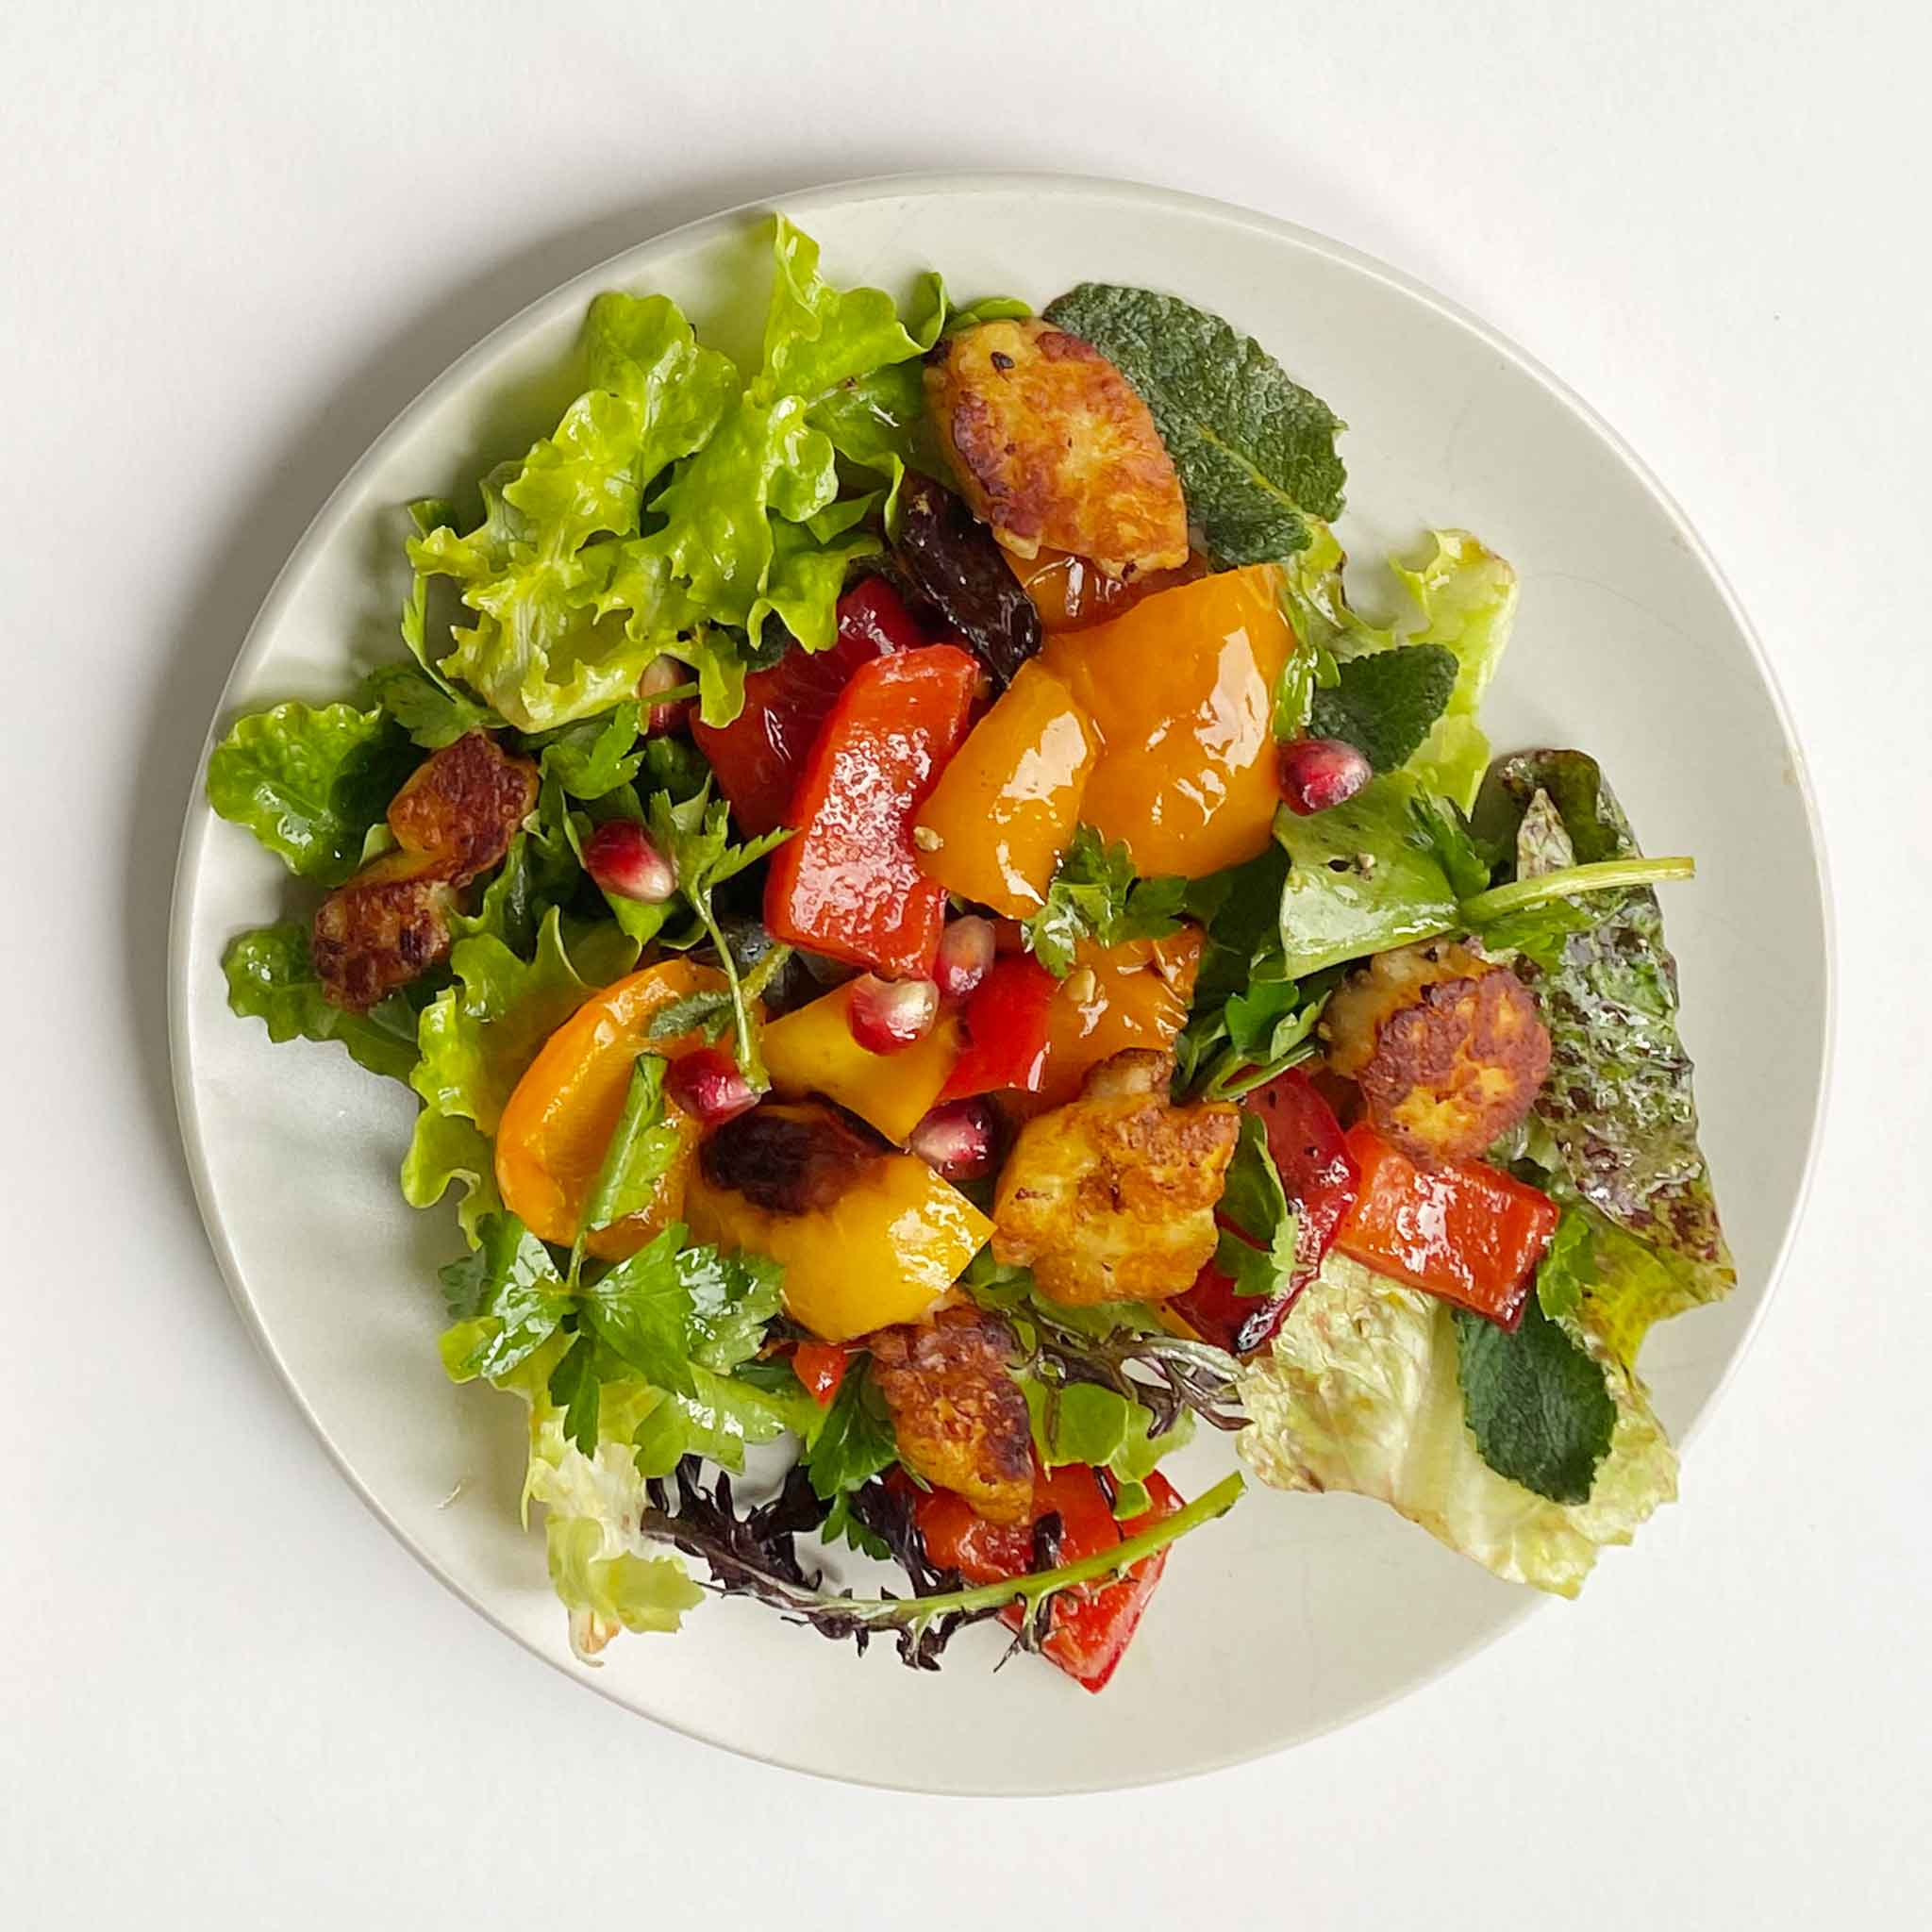 Halloumi and bell pepper salad